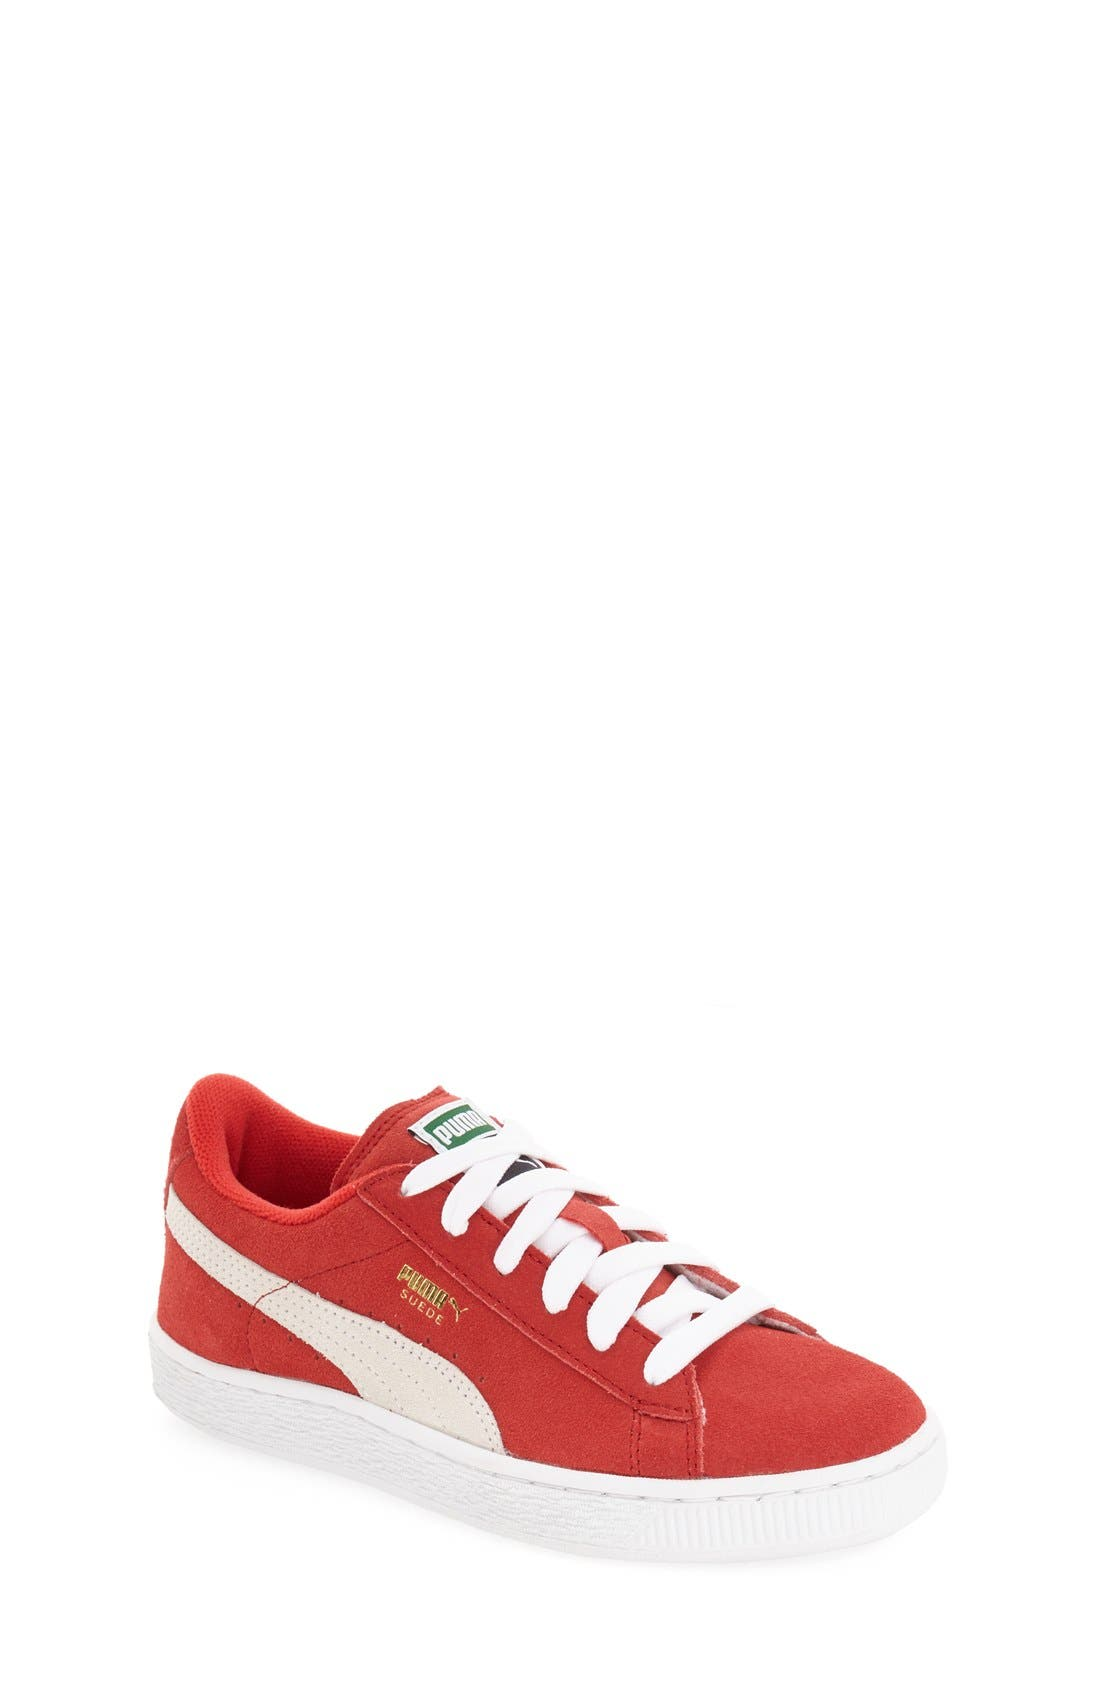 PUMA Suede Sneaker (Toddler, Little Kid & Big Kid)